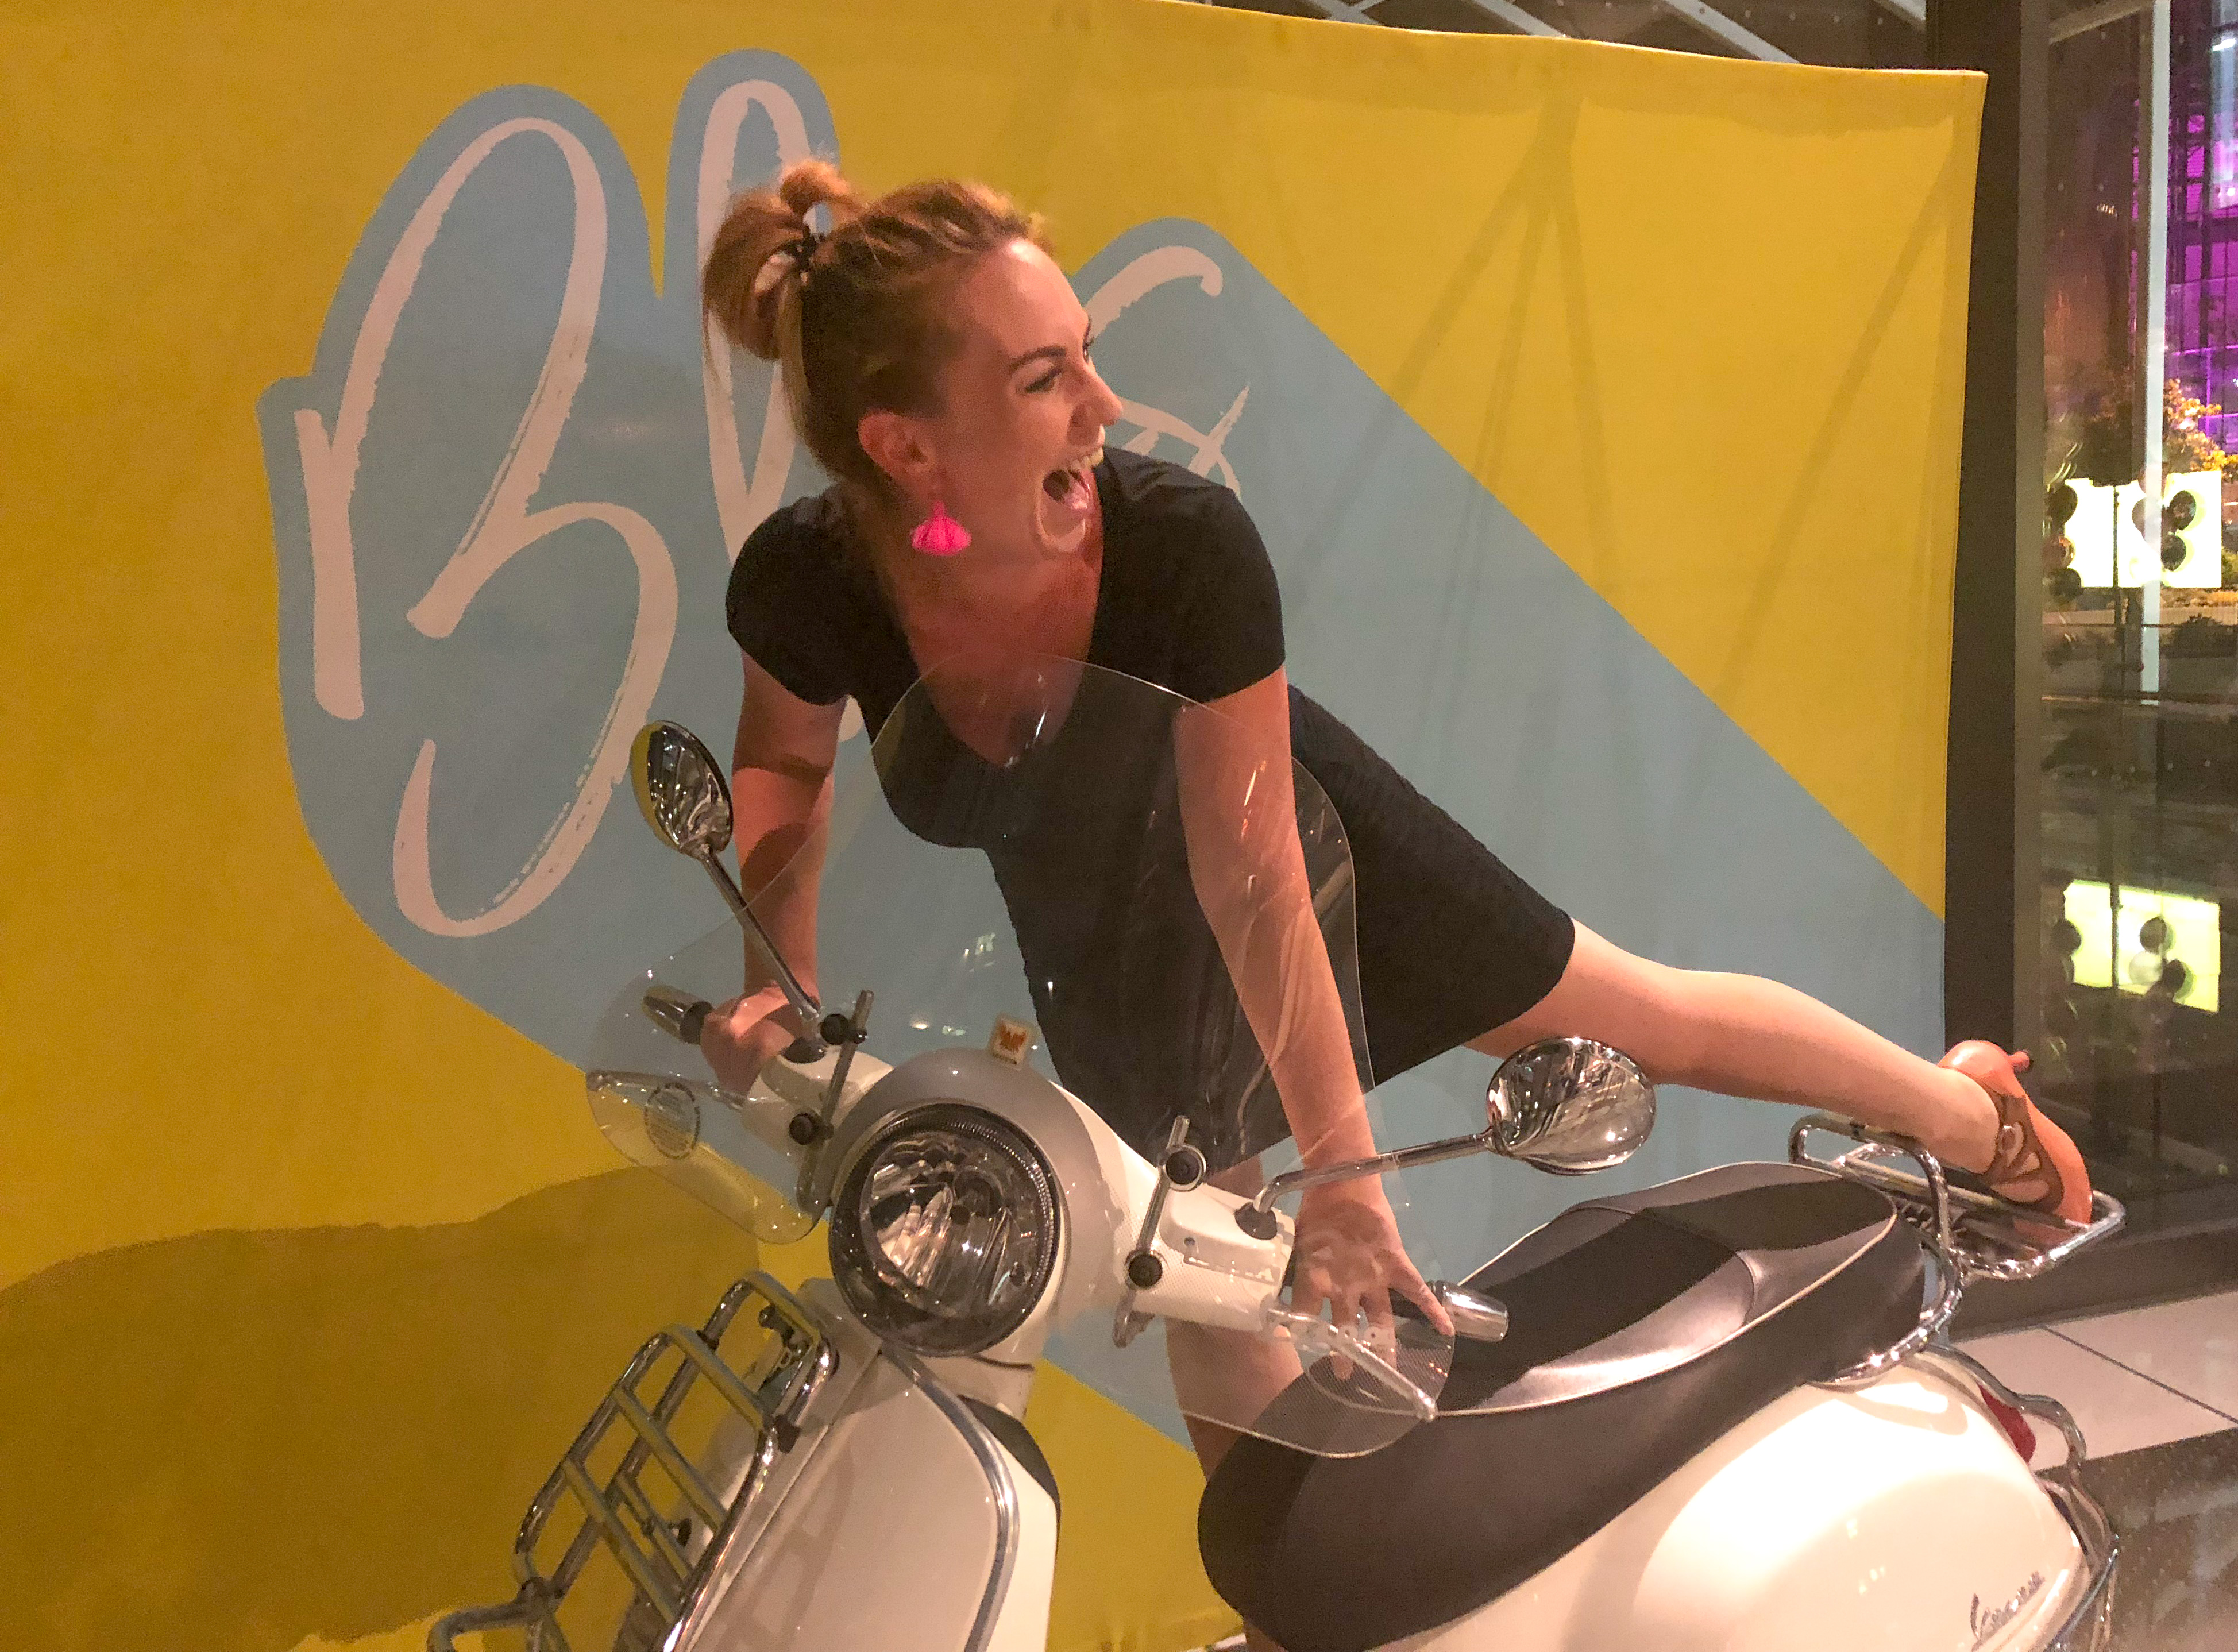 KathrynAnywhere on a vespa #dressbyprana #pranagift #sustainablefashion #fluevogshoes #hotelxtoronto #findyourbliss #happinessisavespa #meanttobehappy